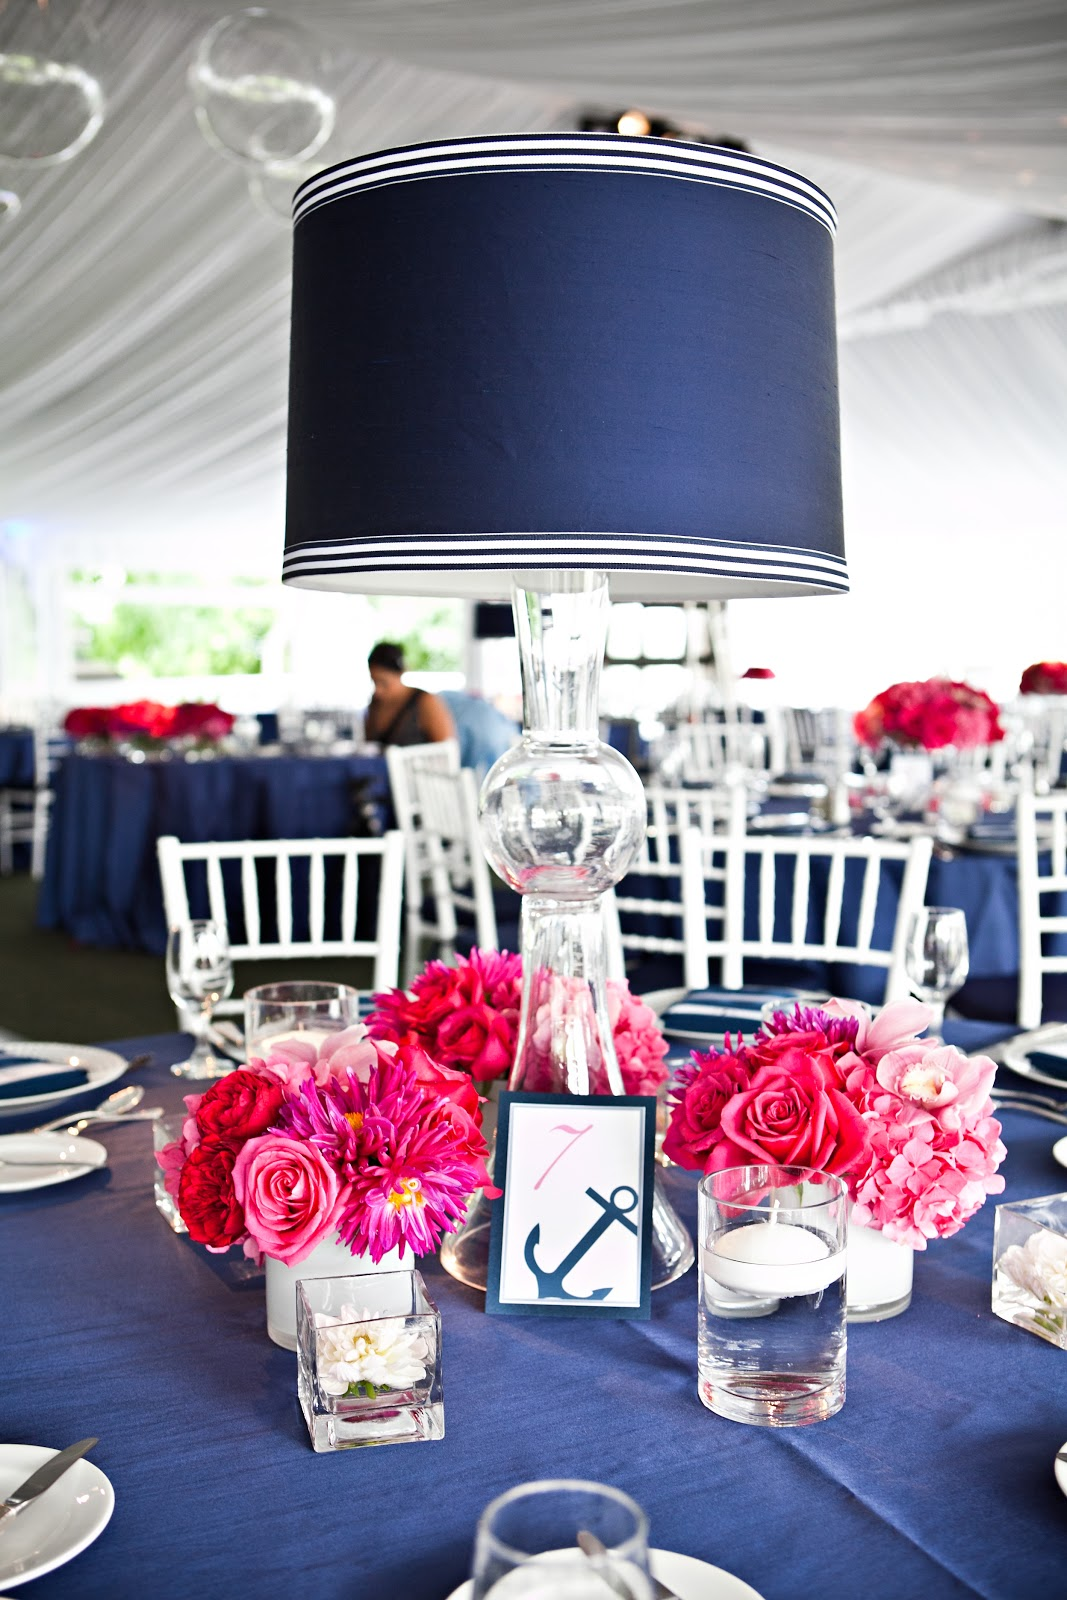 Lamp Centerpieces at Wedding